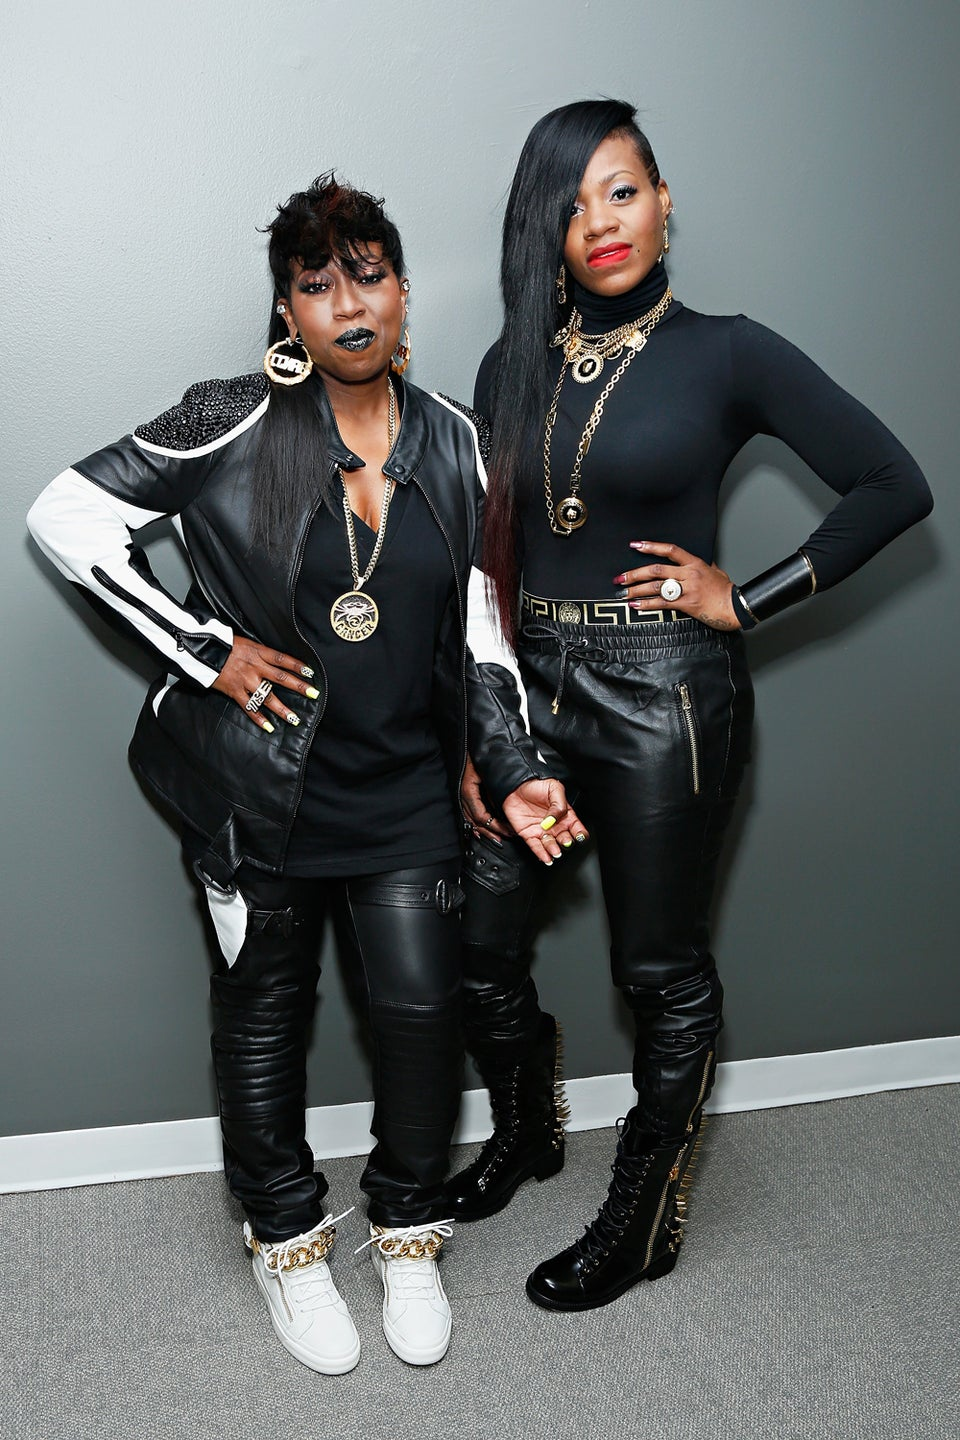 Must-See: Watch Fantasia and Missy Elliot Perform 'Without Me'